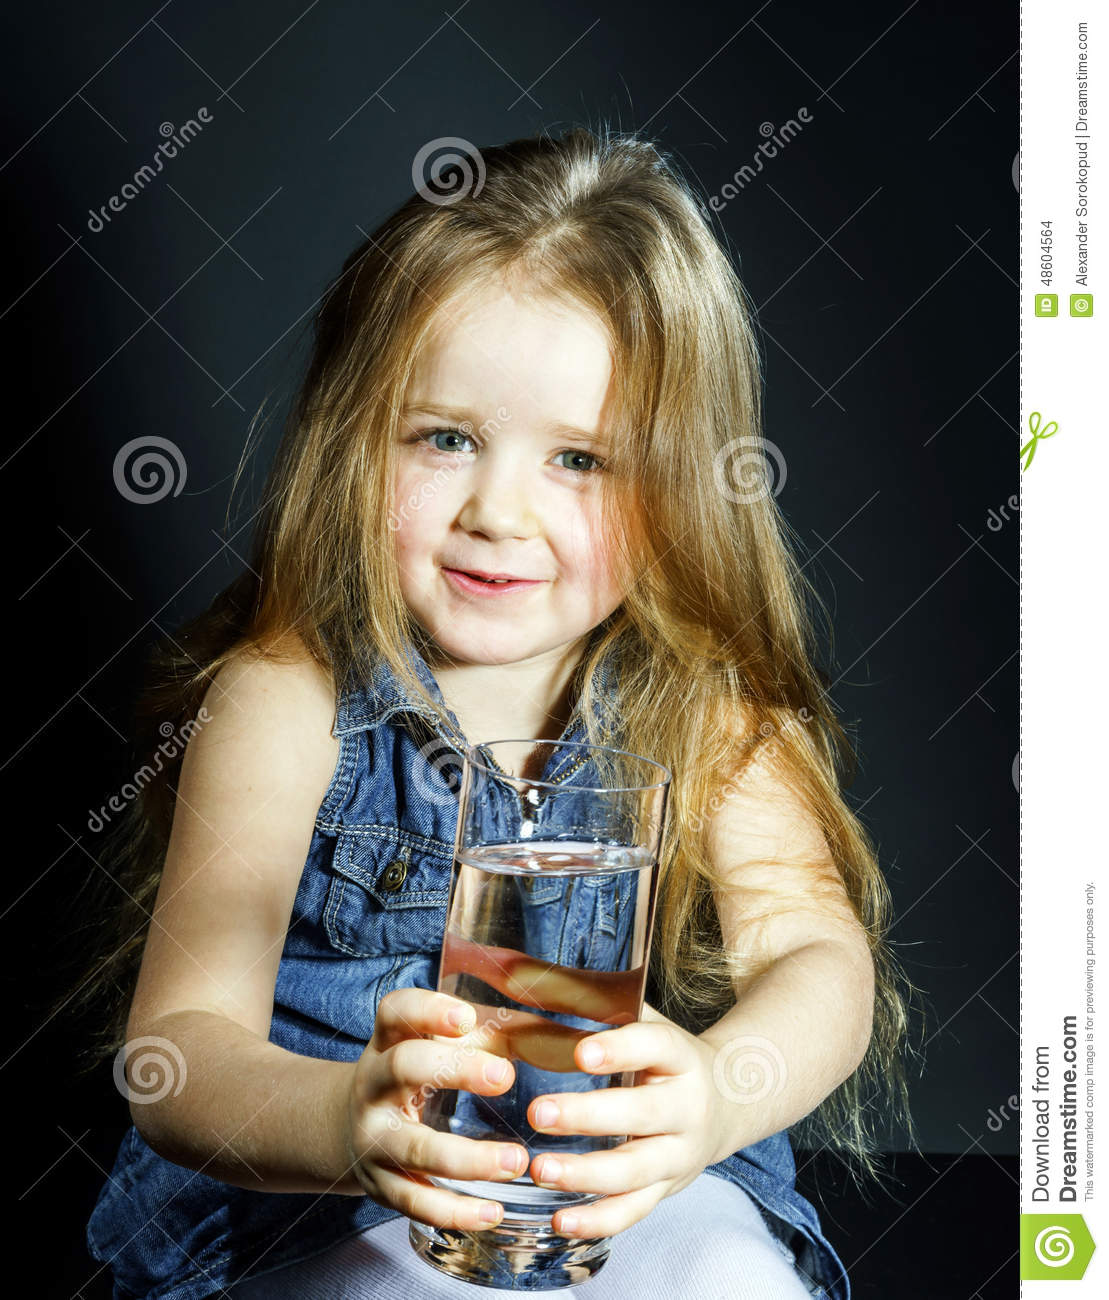 Cute Little Girl With Long Hair Holding Glass Of Water Stock Photo